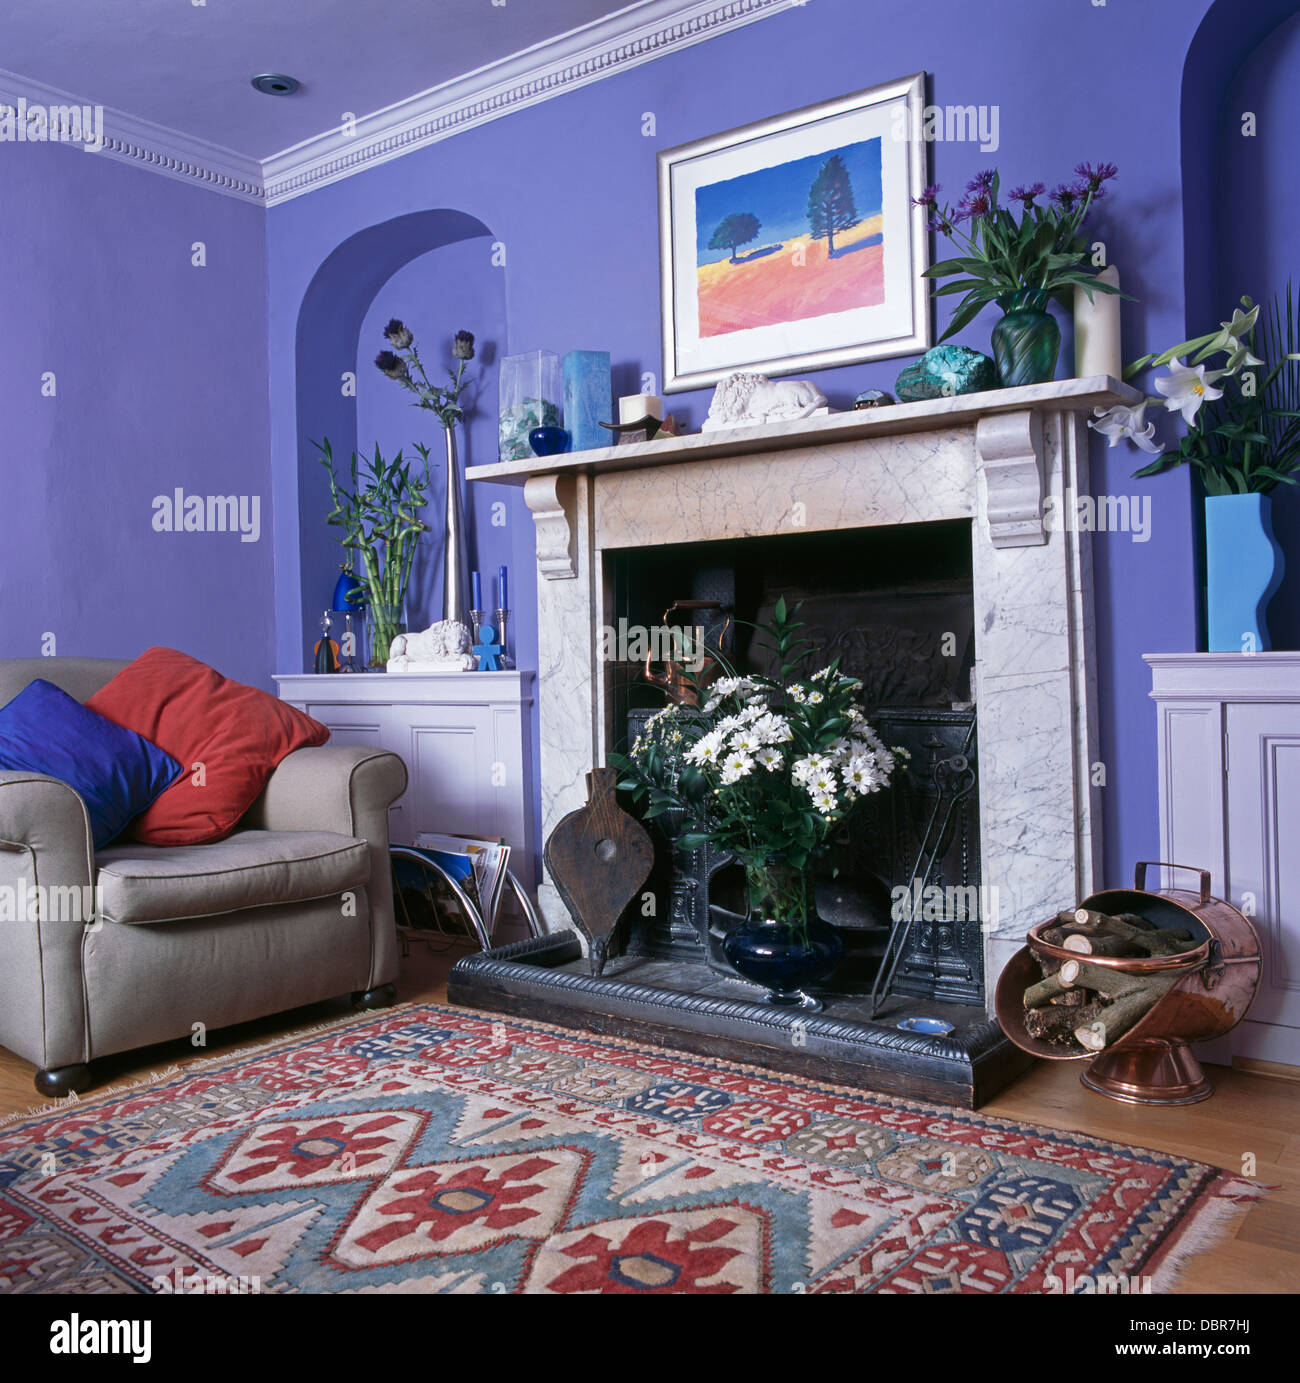 Patterned Rug In Front Of Marble Fireplace In Blue Living